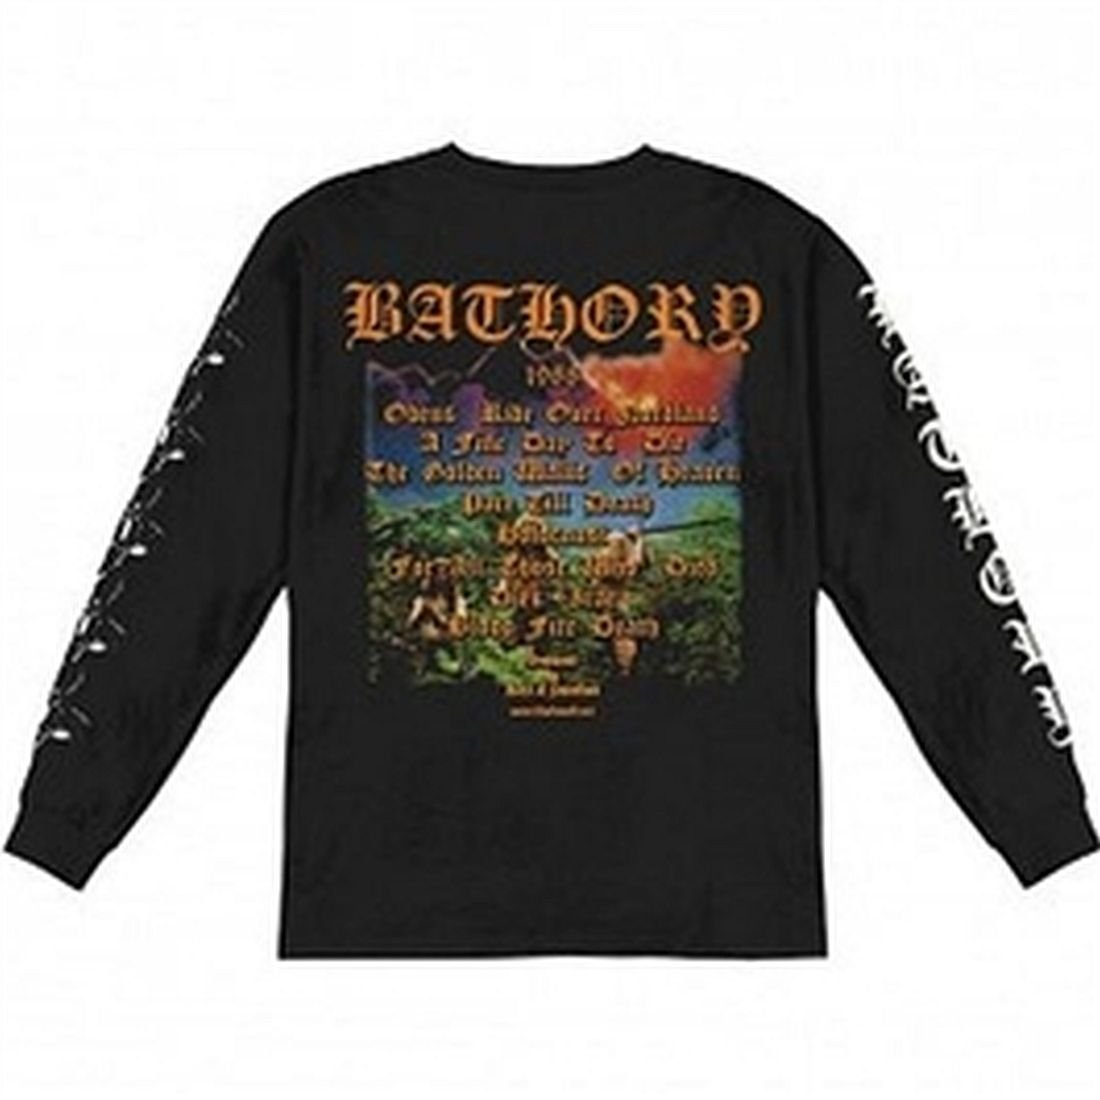 Amazon.com: Bathory - Blood Fire Death Long Sleeve T-Shirt (Small): Clothing